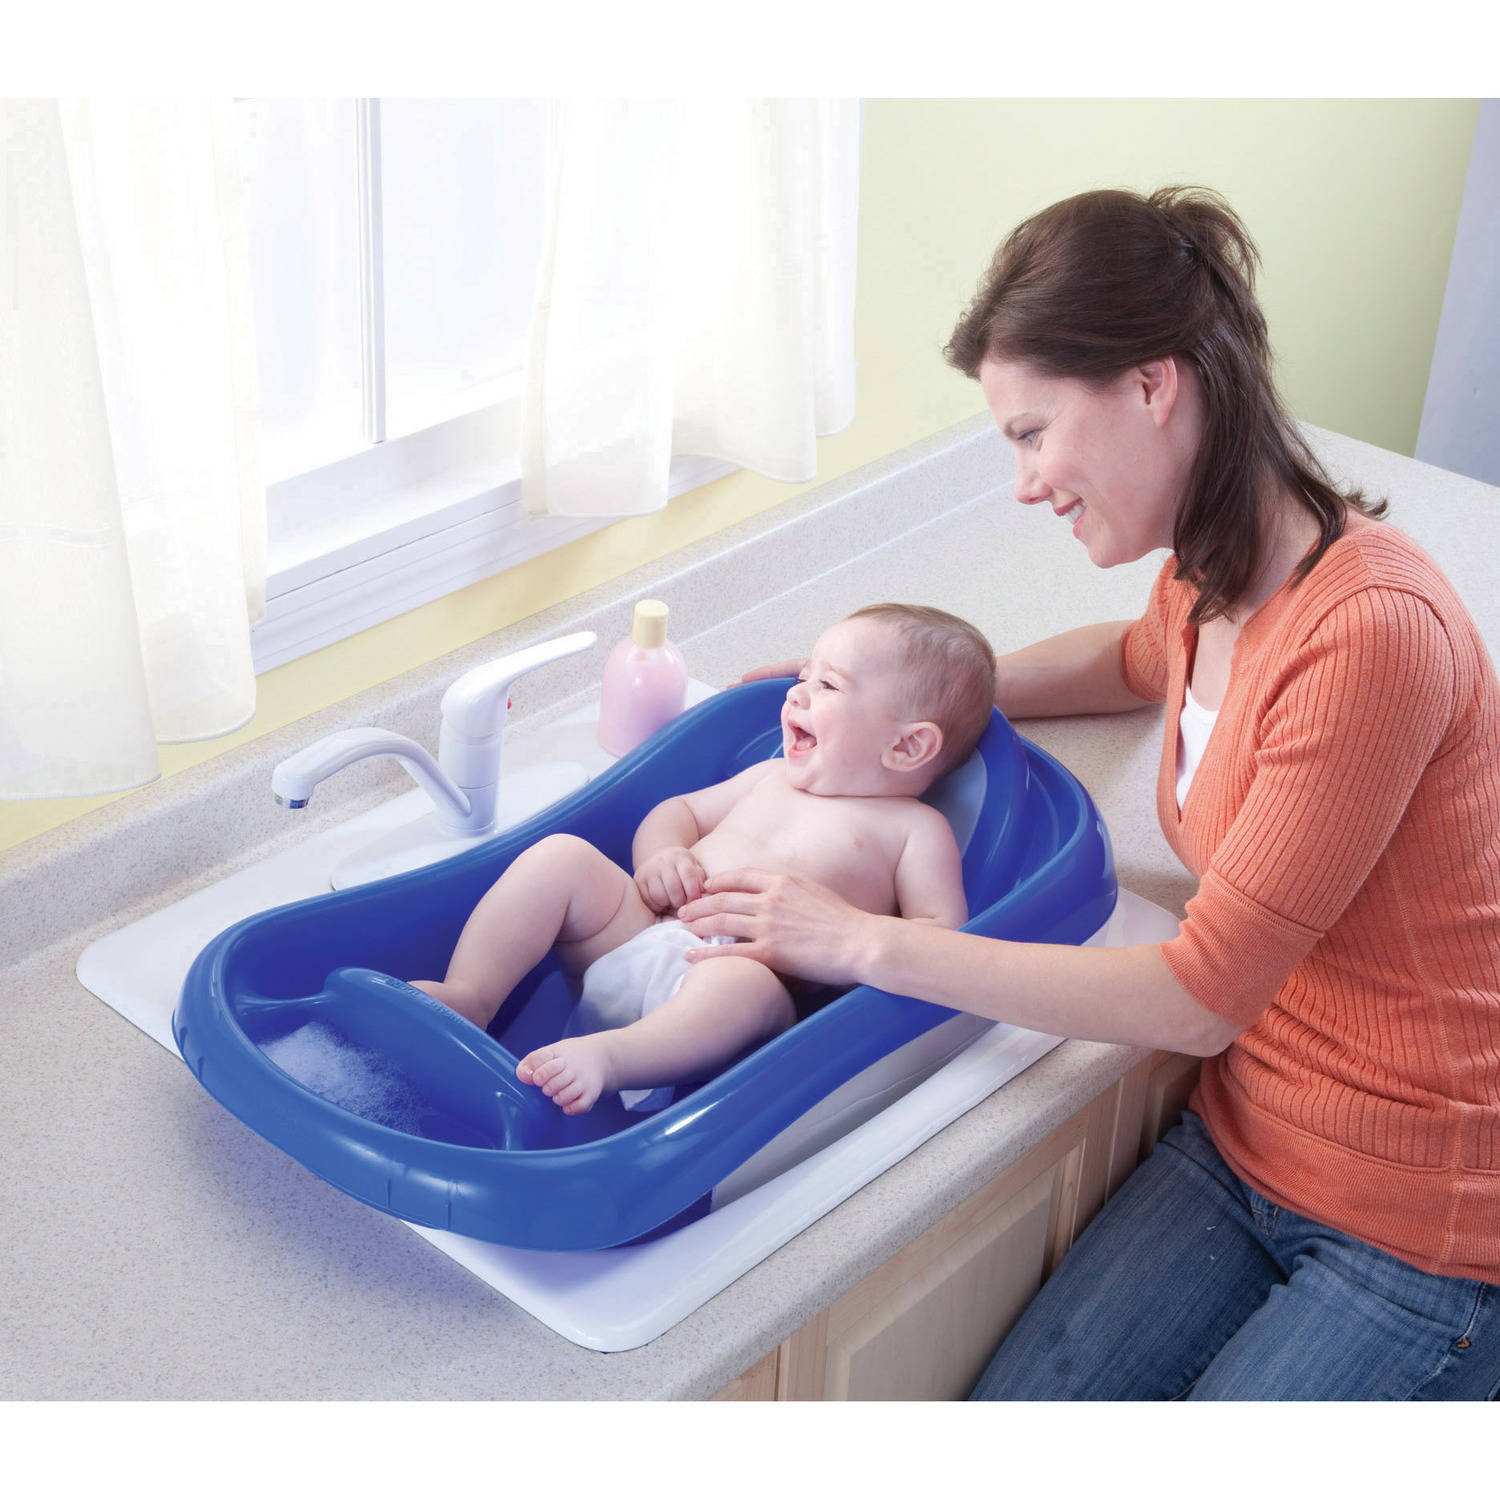 Deluxe Newborn To Toddler Tub (Blue) baby bath tub w/sling - Best ...